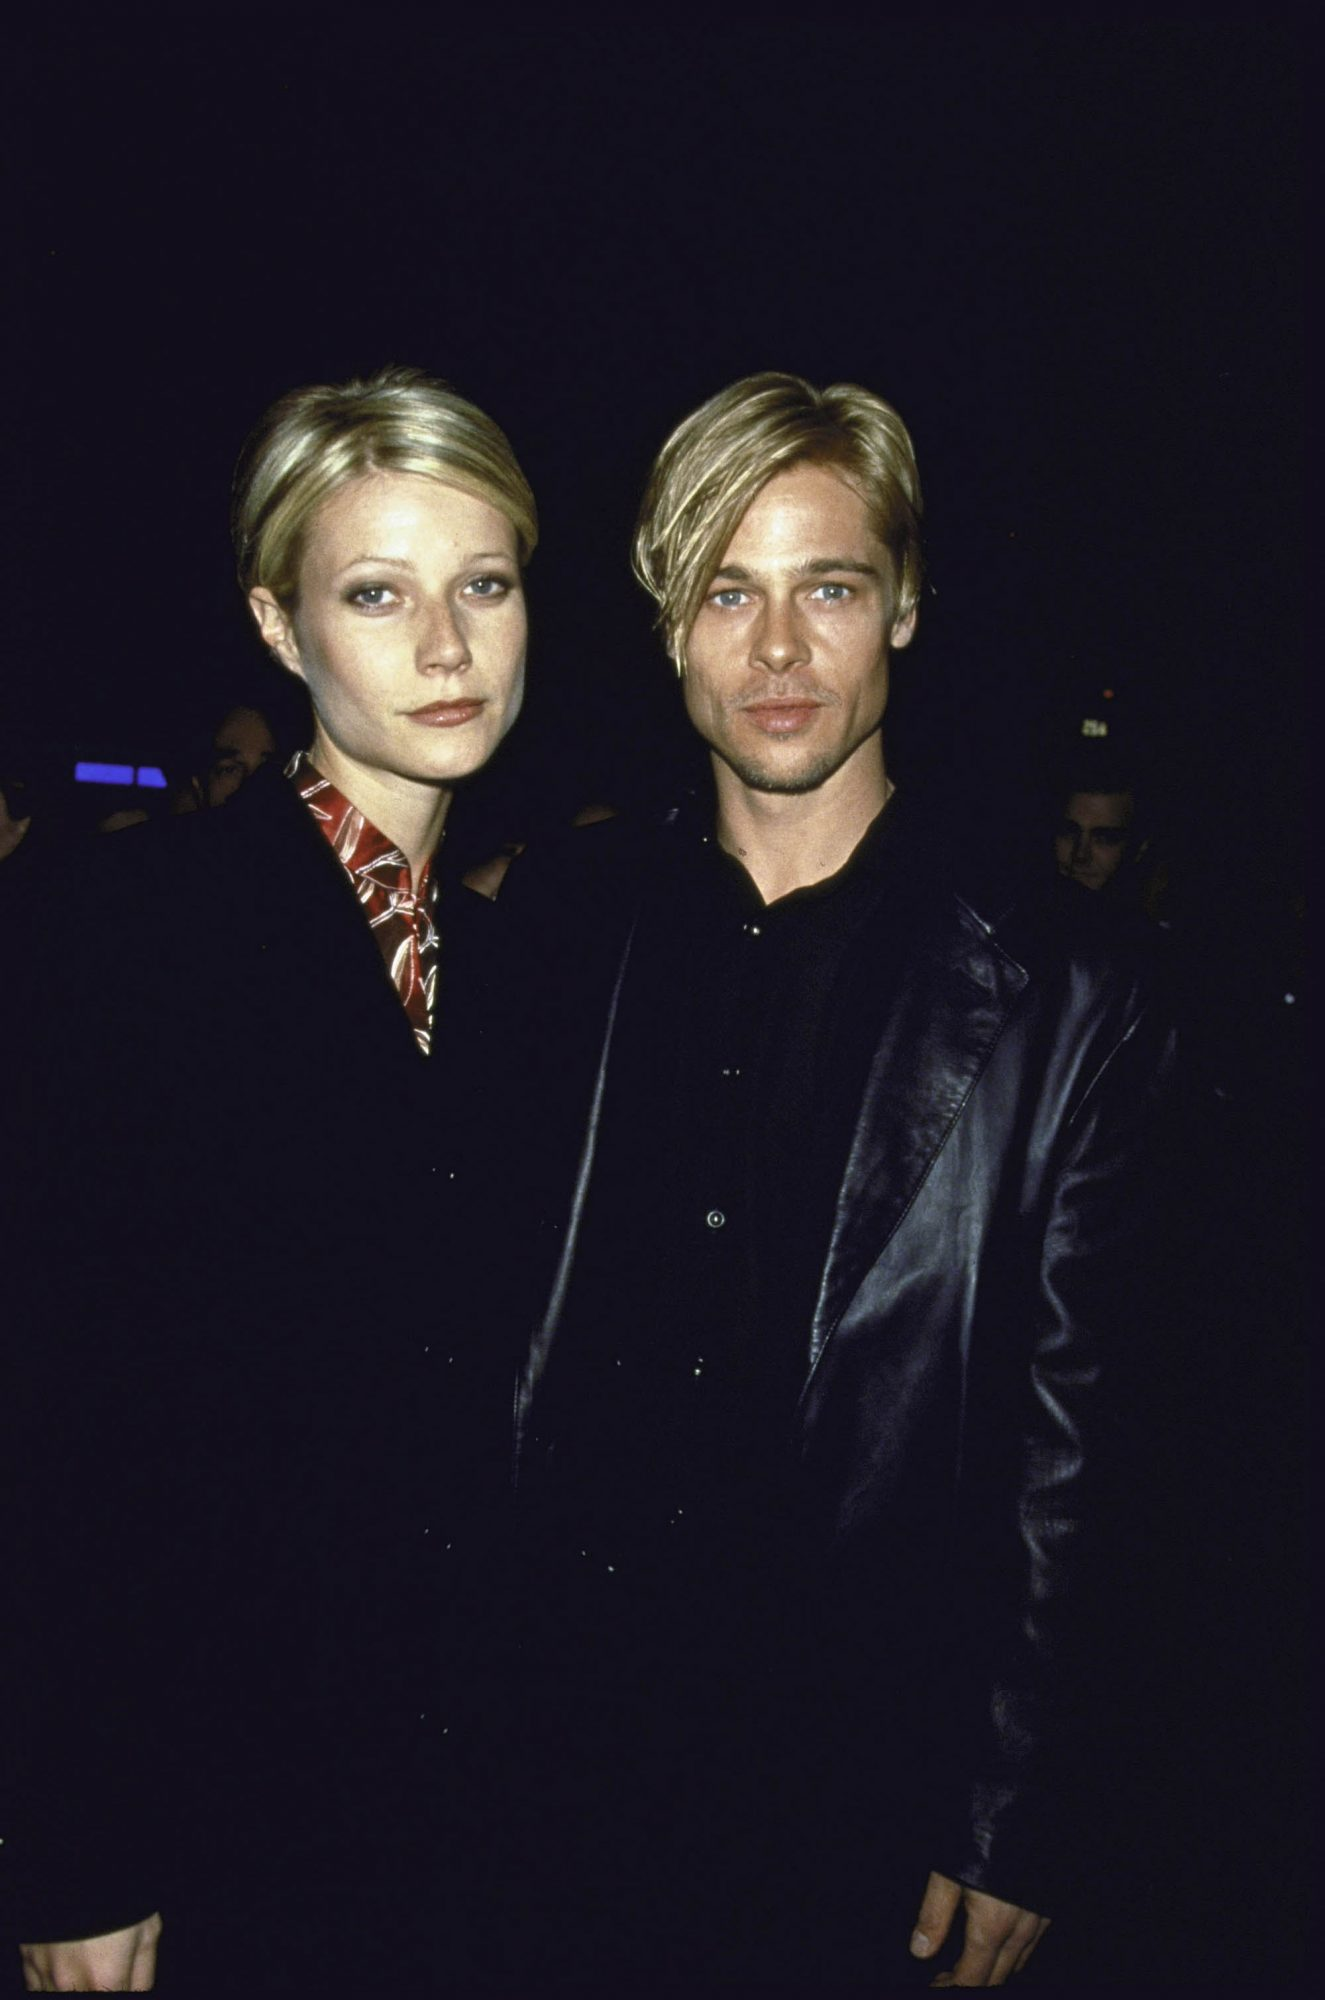 Gwyneth Paltrow and Brad Pitt lead